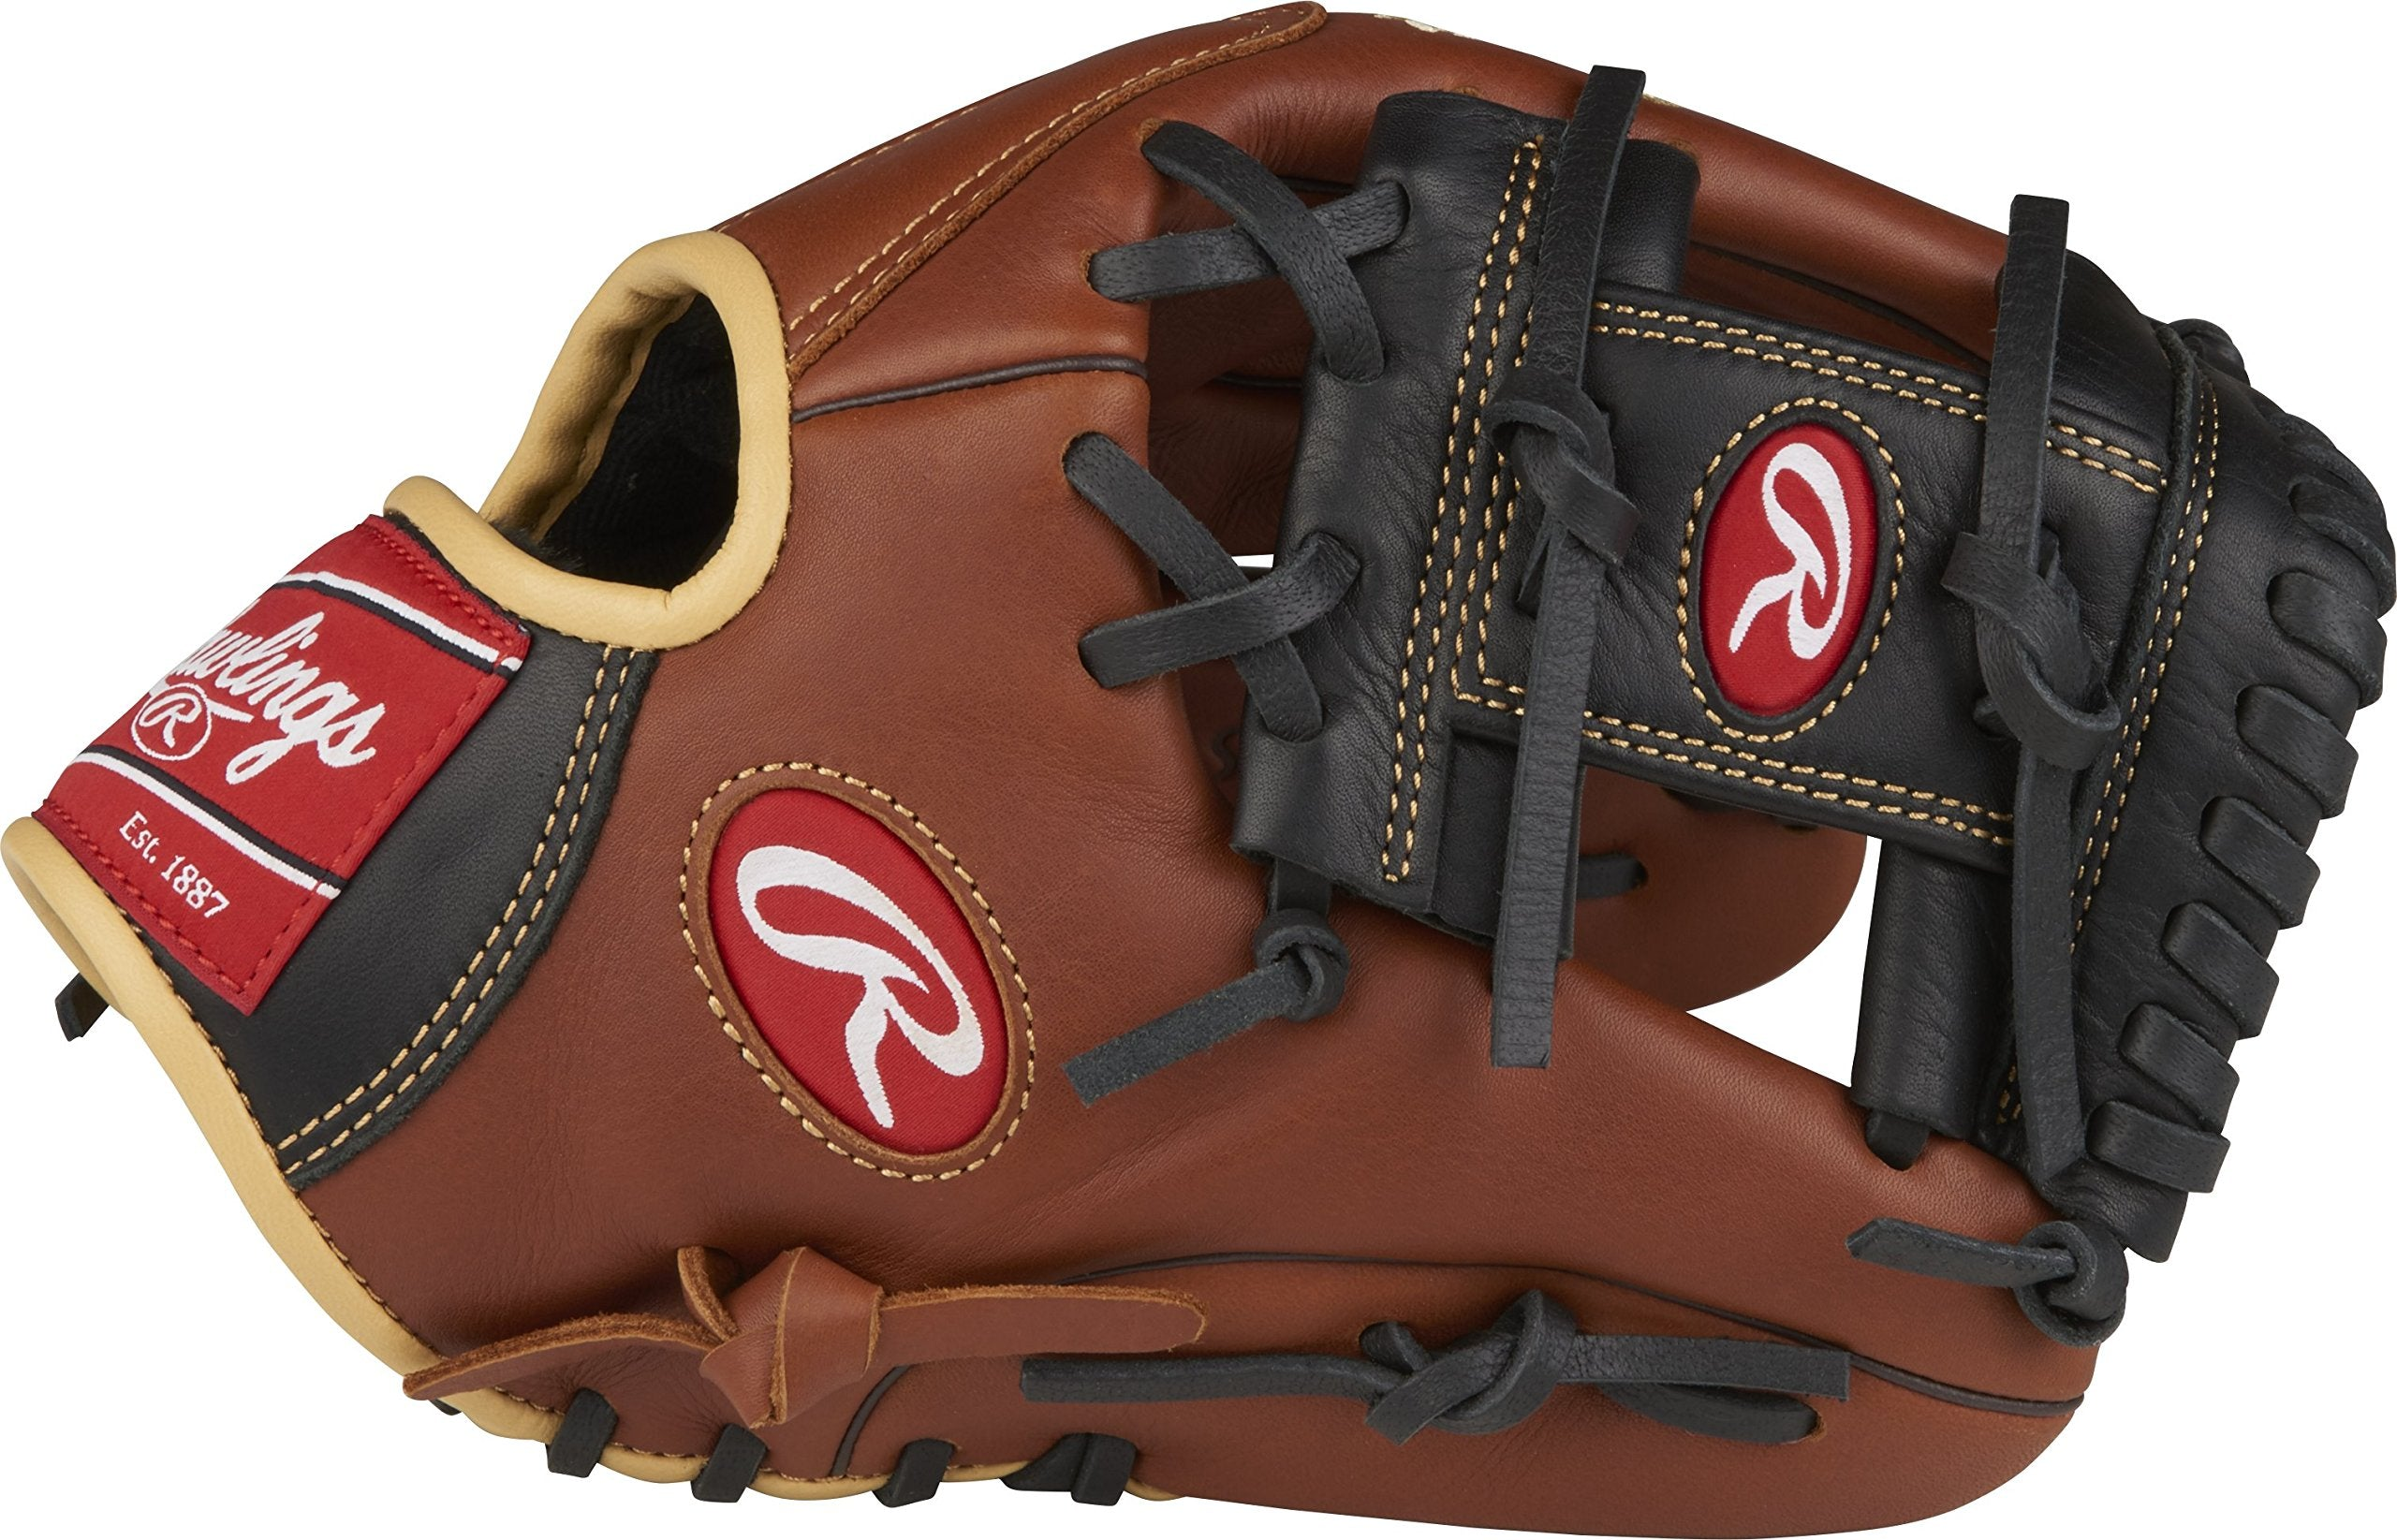 BallGame™ Rawlings Baseball Infield Glove - Right Sandlot Series 11 1/2